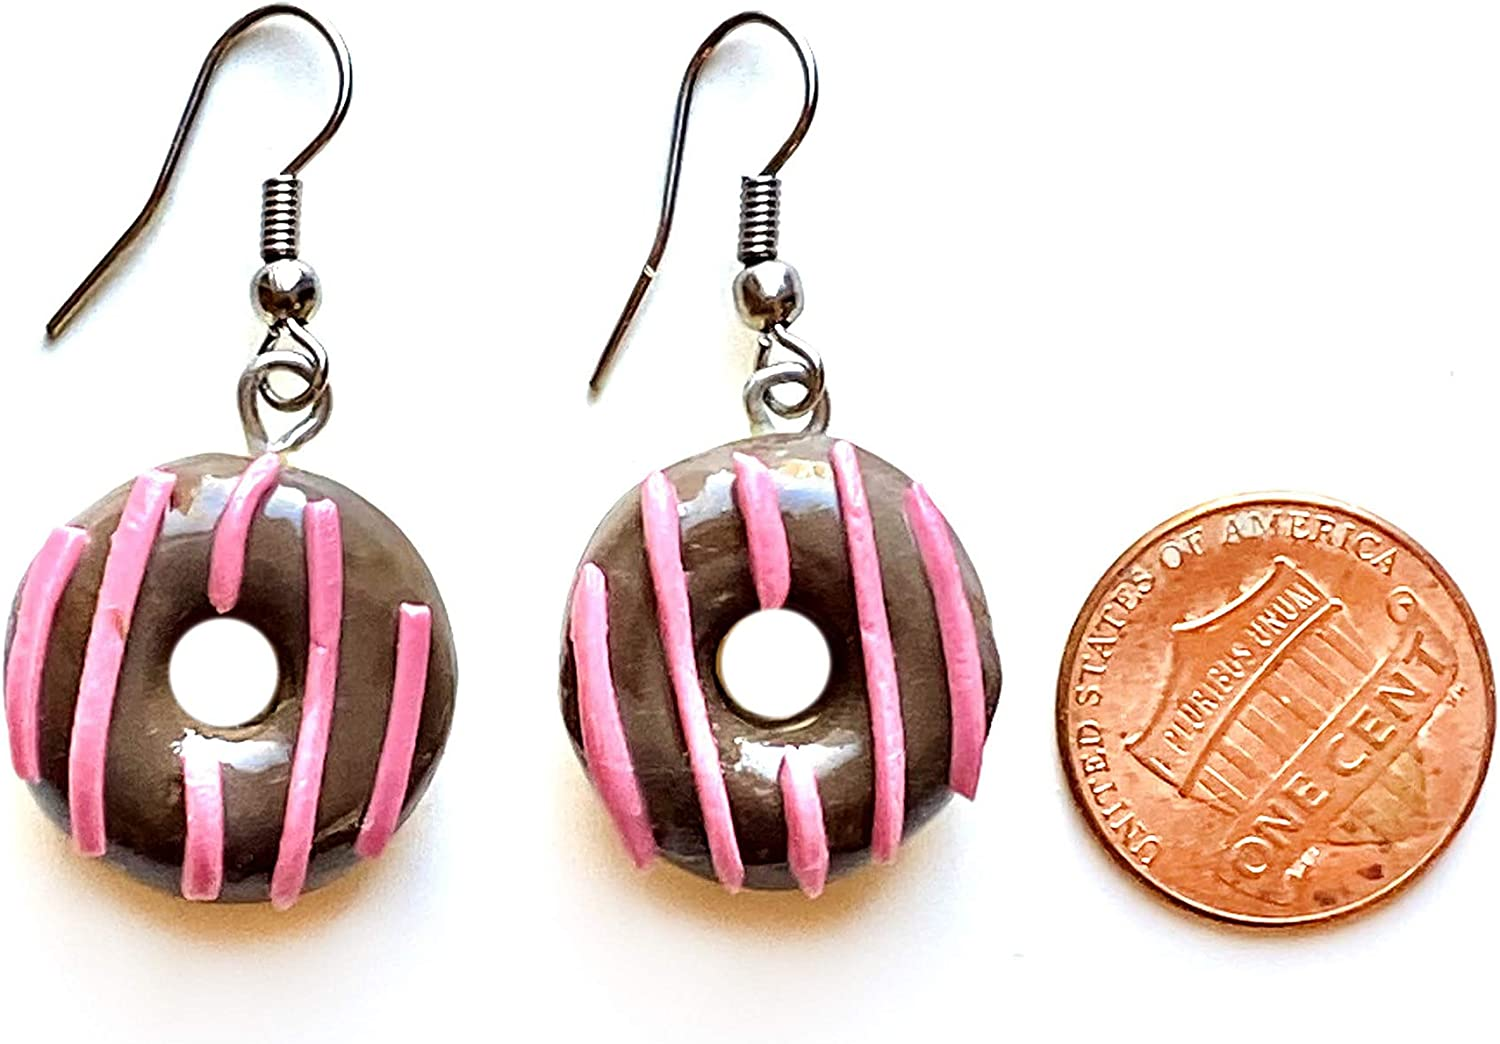 Sunne Tropical Handmade Doughnut Earrings | Food Miniature 3D Colorful Donut Drop Dangle Jewelry | Girls Teen | made with Polymer Thai Clay pack in RANDOM COLOR Giftbox Chocolate Line